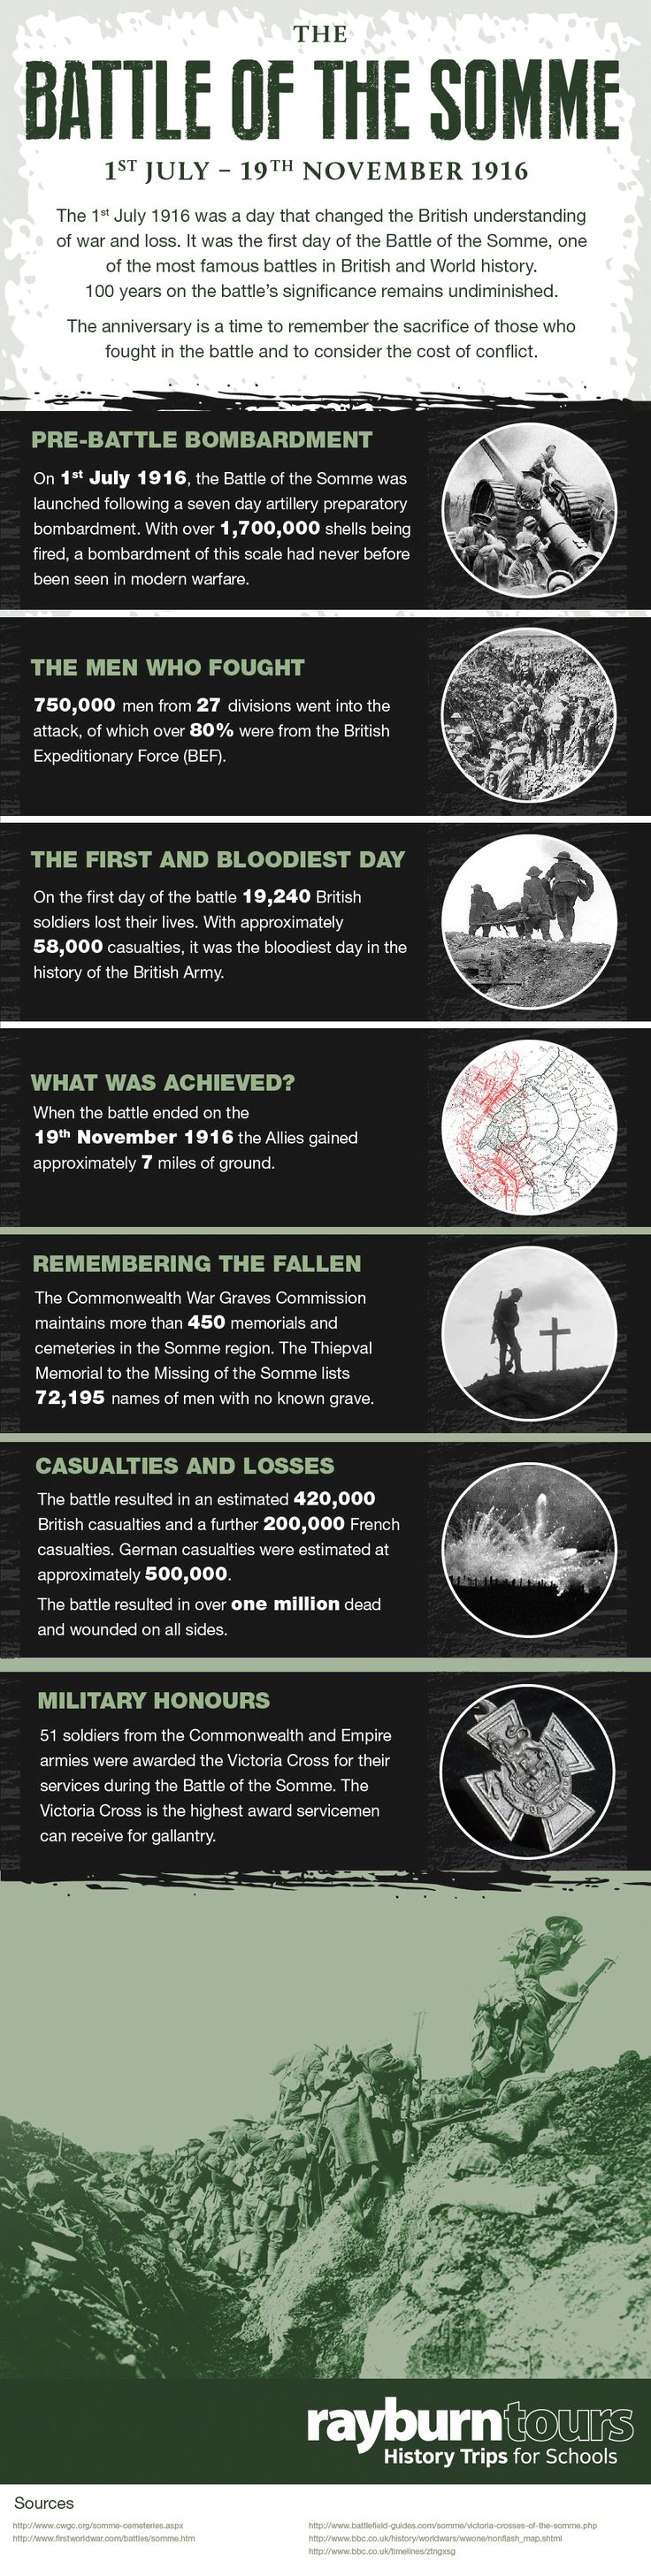 Remembering The Battle Of The Somme – 100 Years On #Infographic #History #War